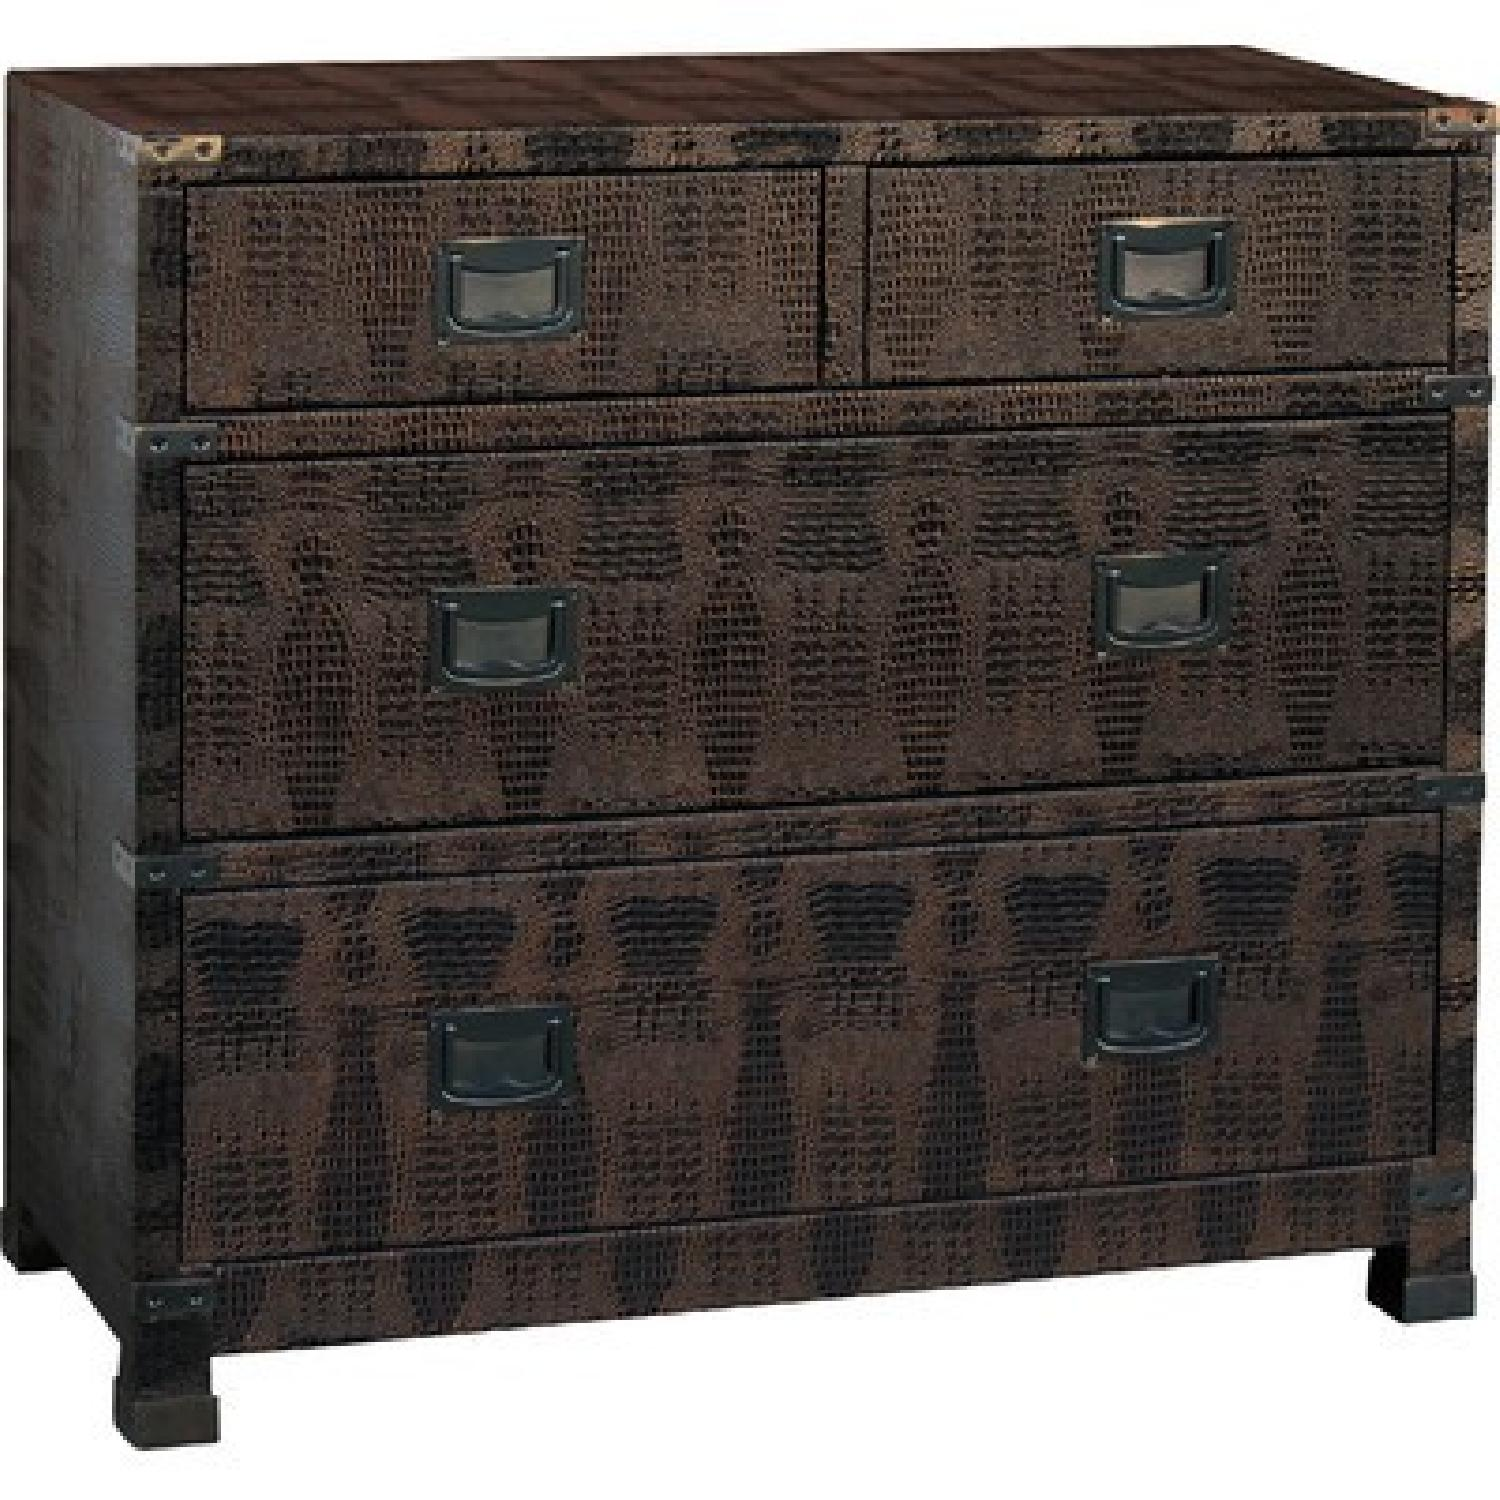 Accent Chest w/ Drawers in Dark Brown Faux Crocodile Finish - image-1